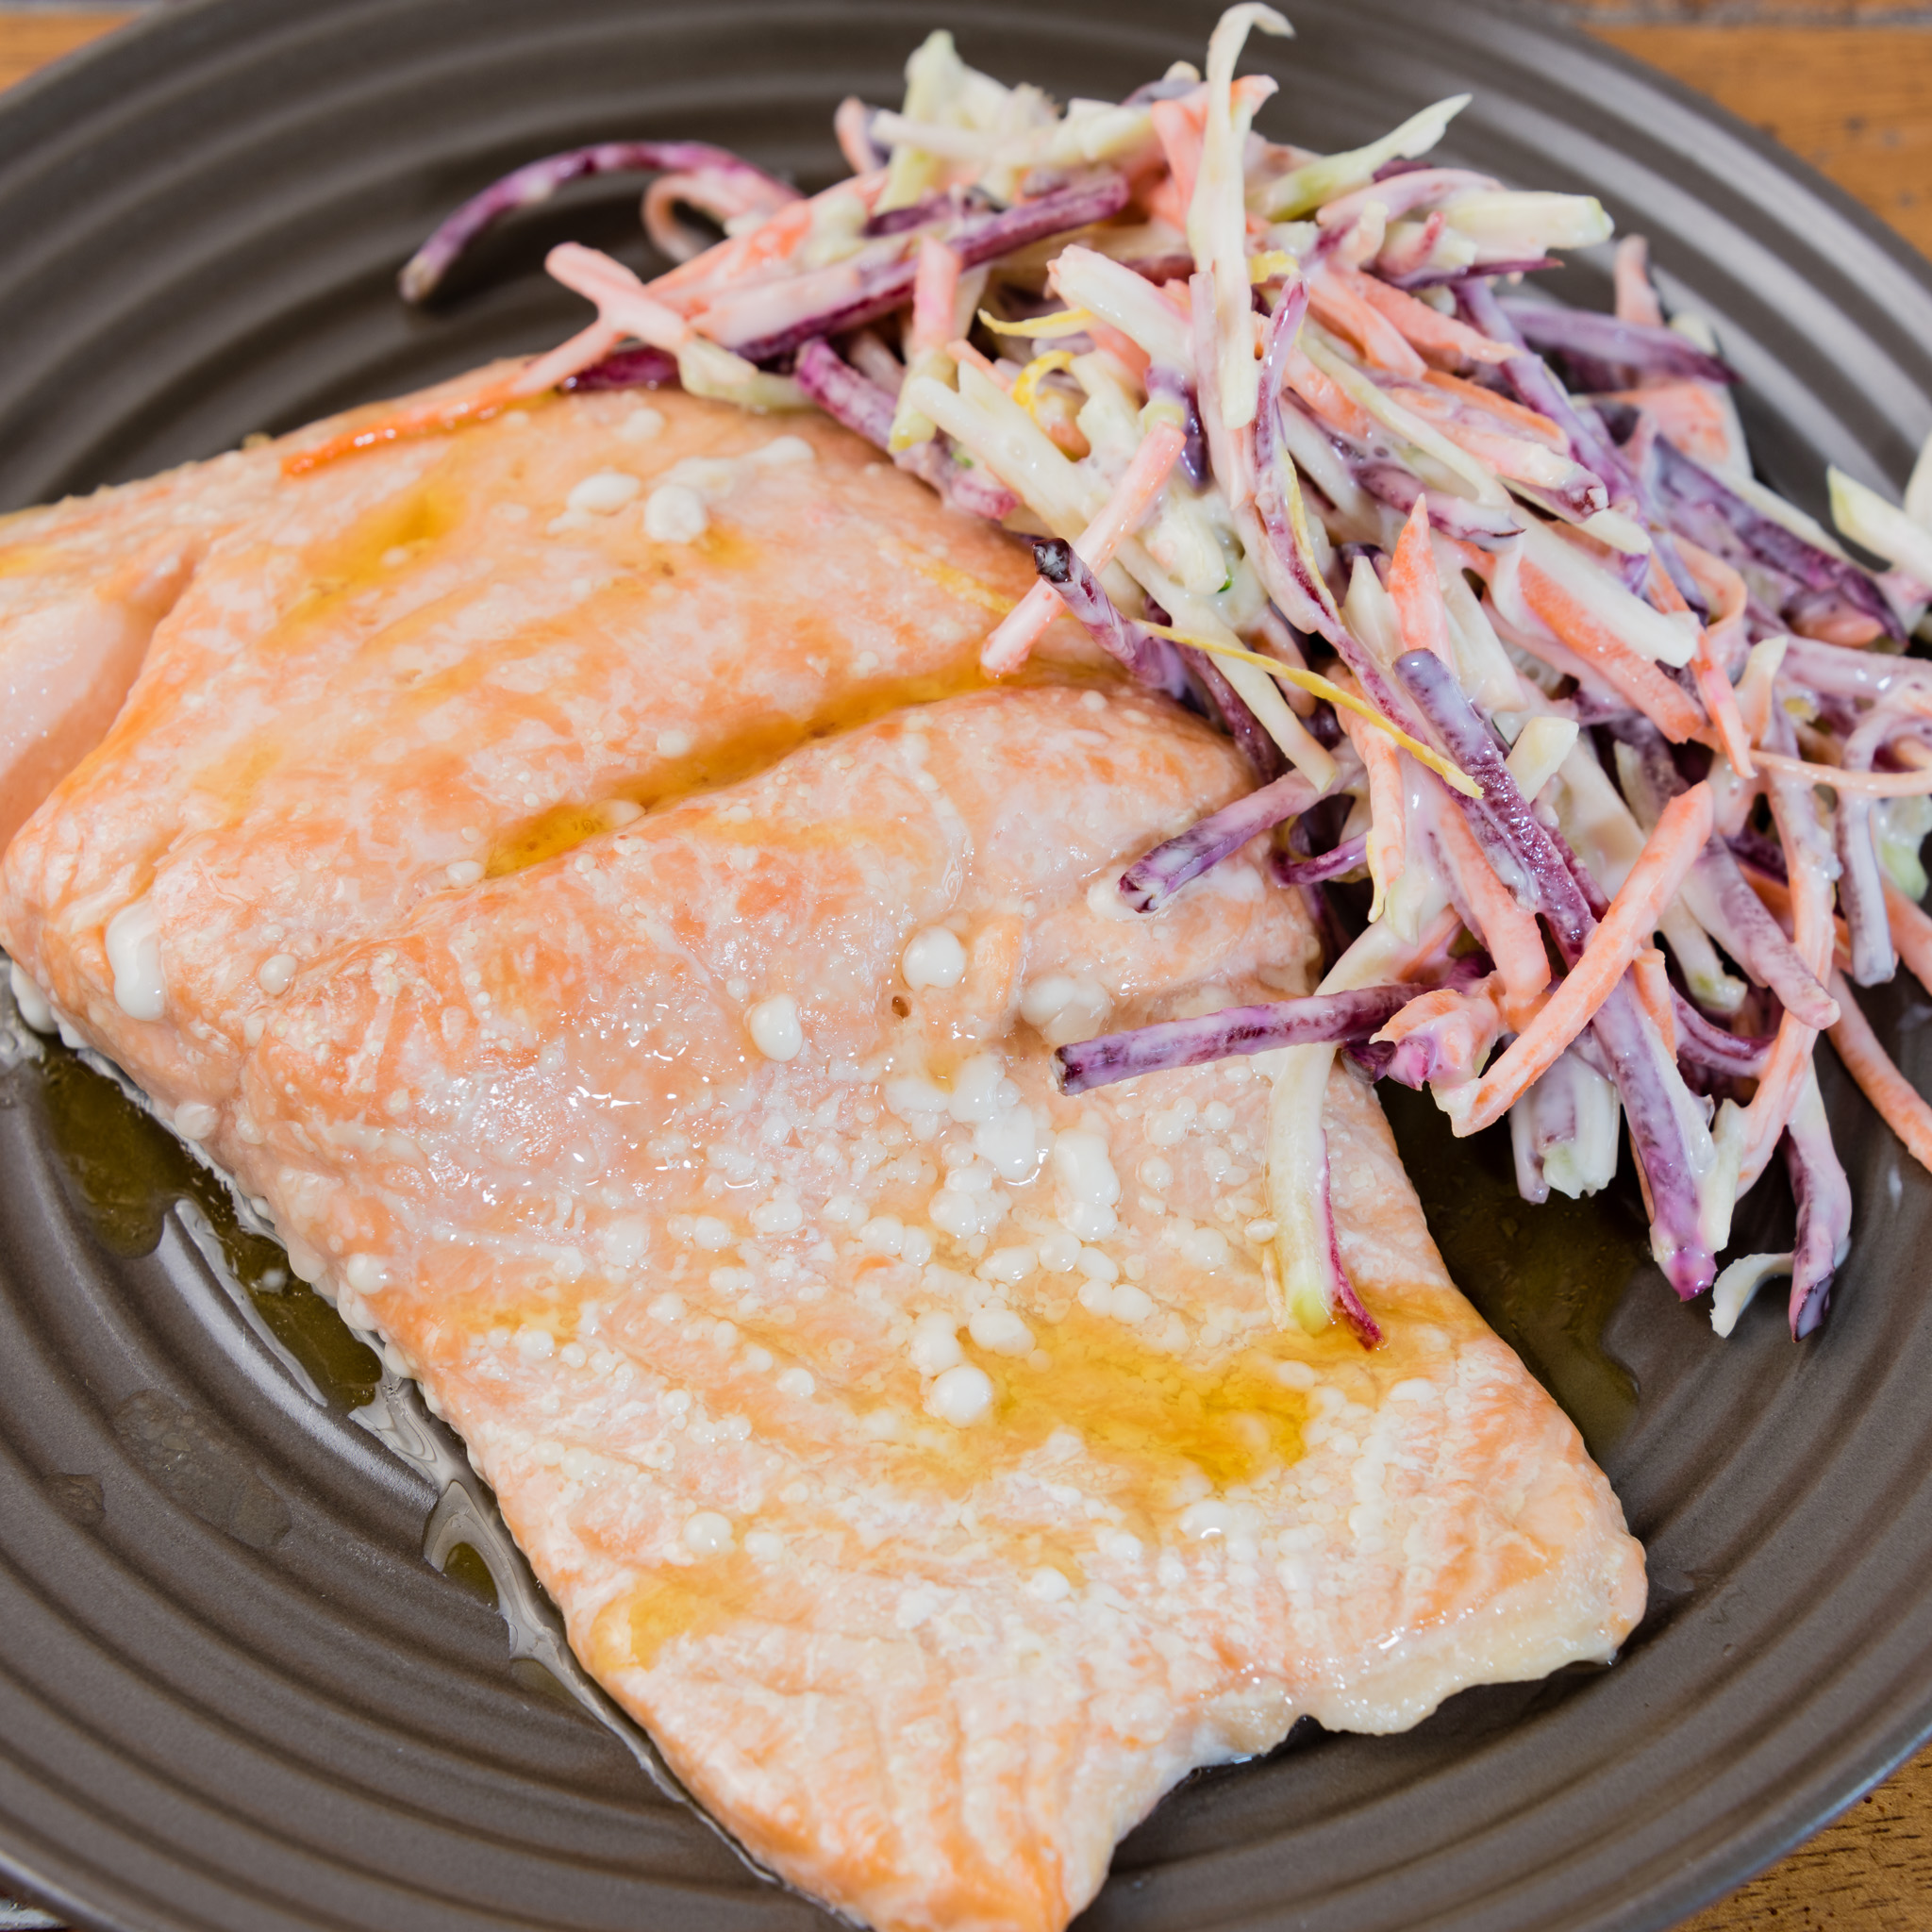 Baked salmon and coleslaw for dinner while watching My Kitchen Rules